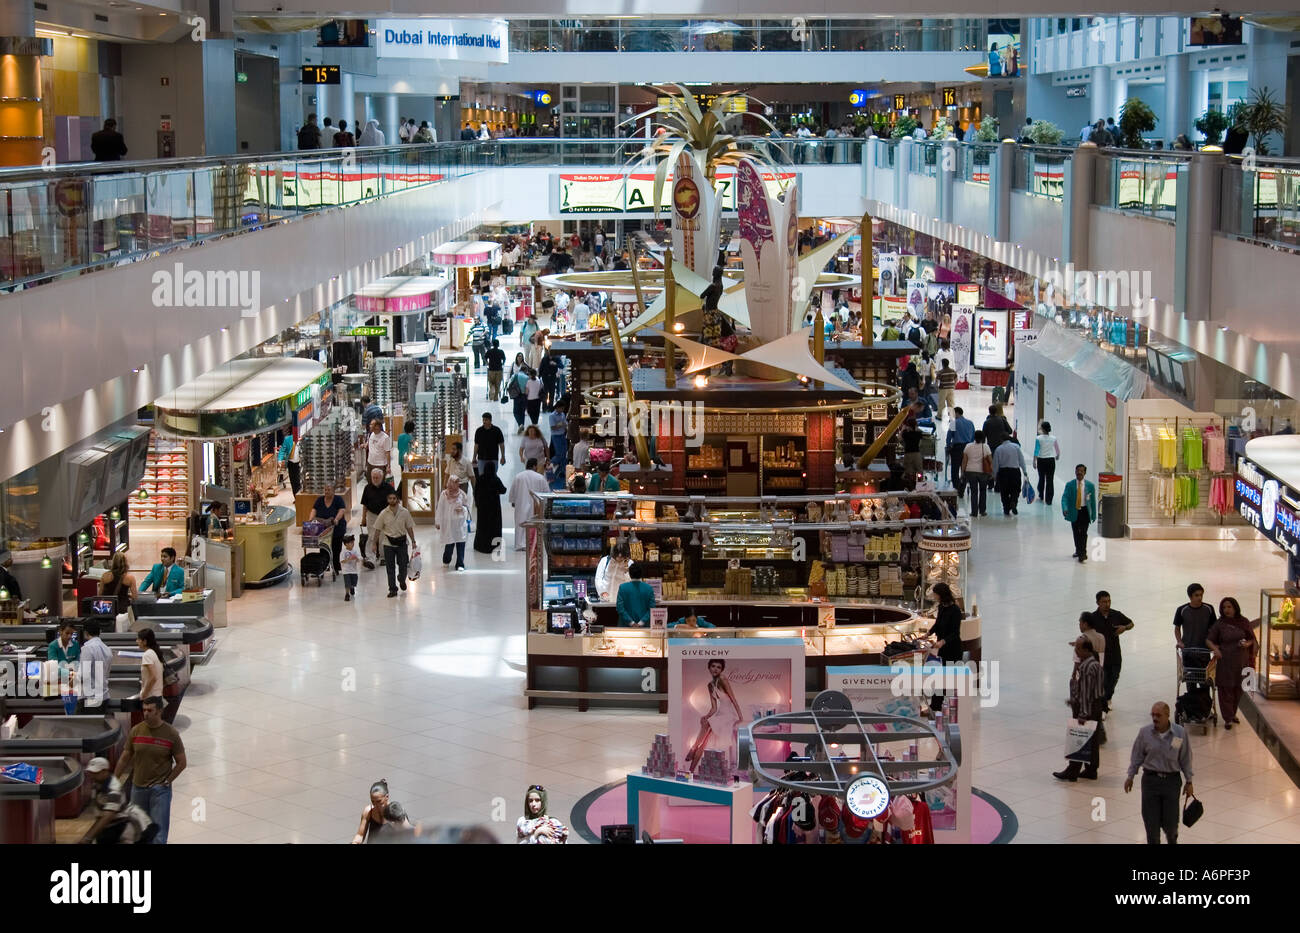 Retail outlets Dubai International Airport - Stock Image